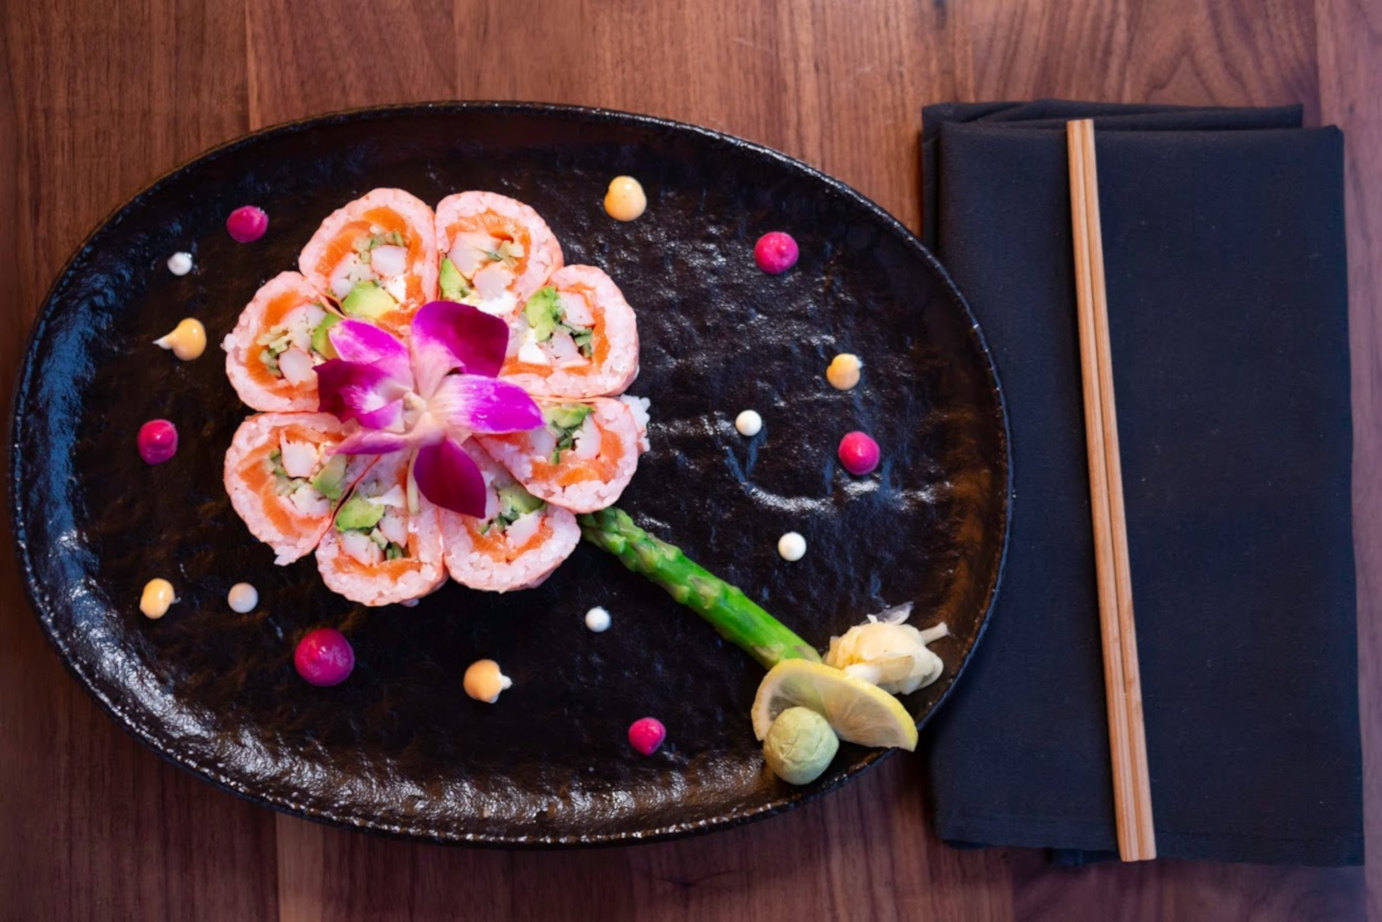 Sushi plate with decorations